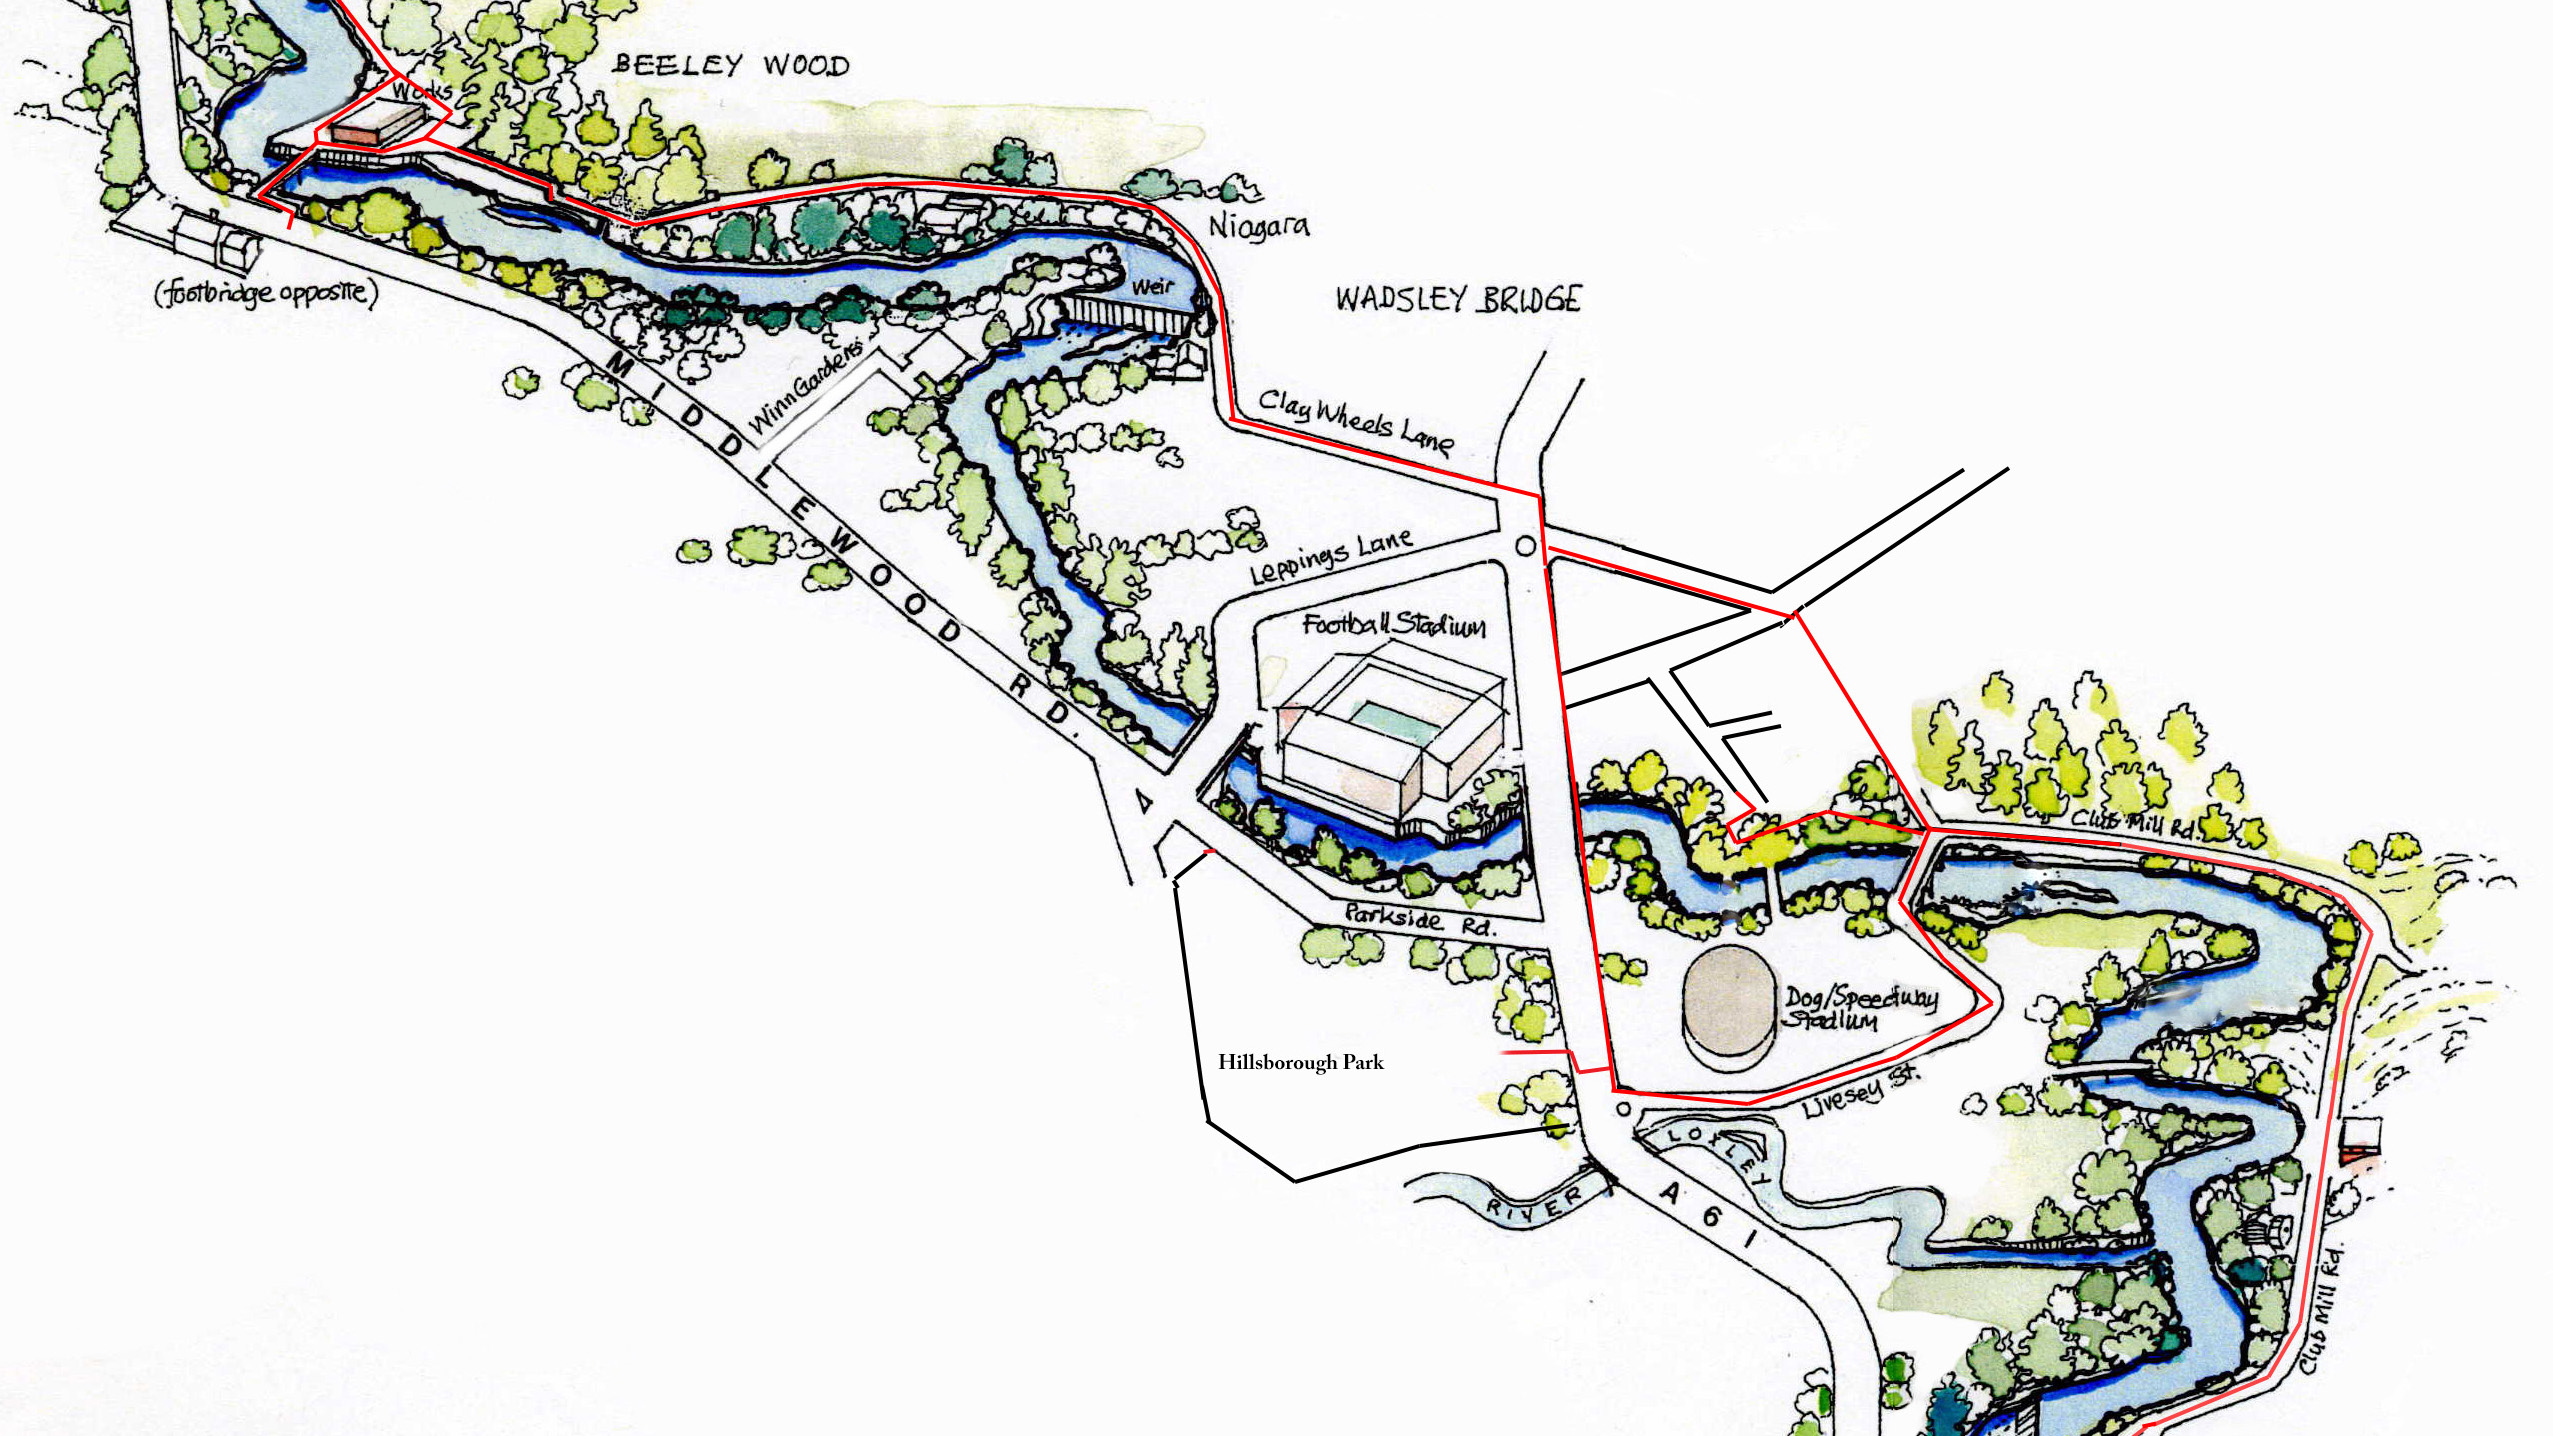 Map of the Upper Don Trail from Beeley Wood to Club Mill Road